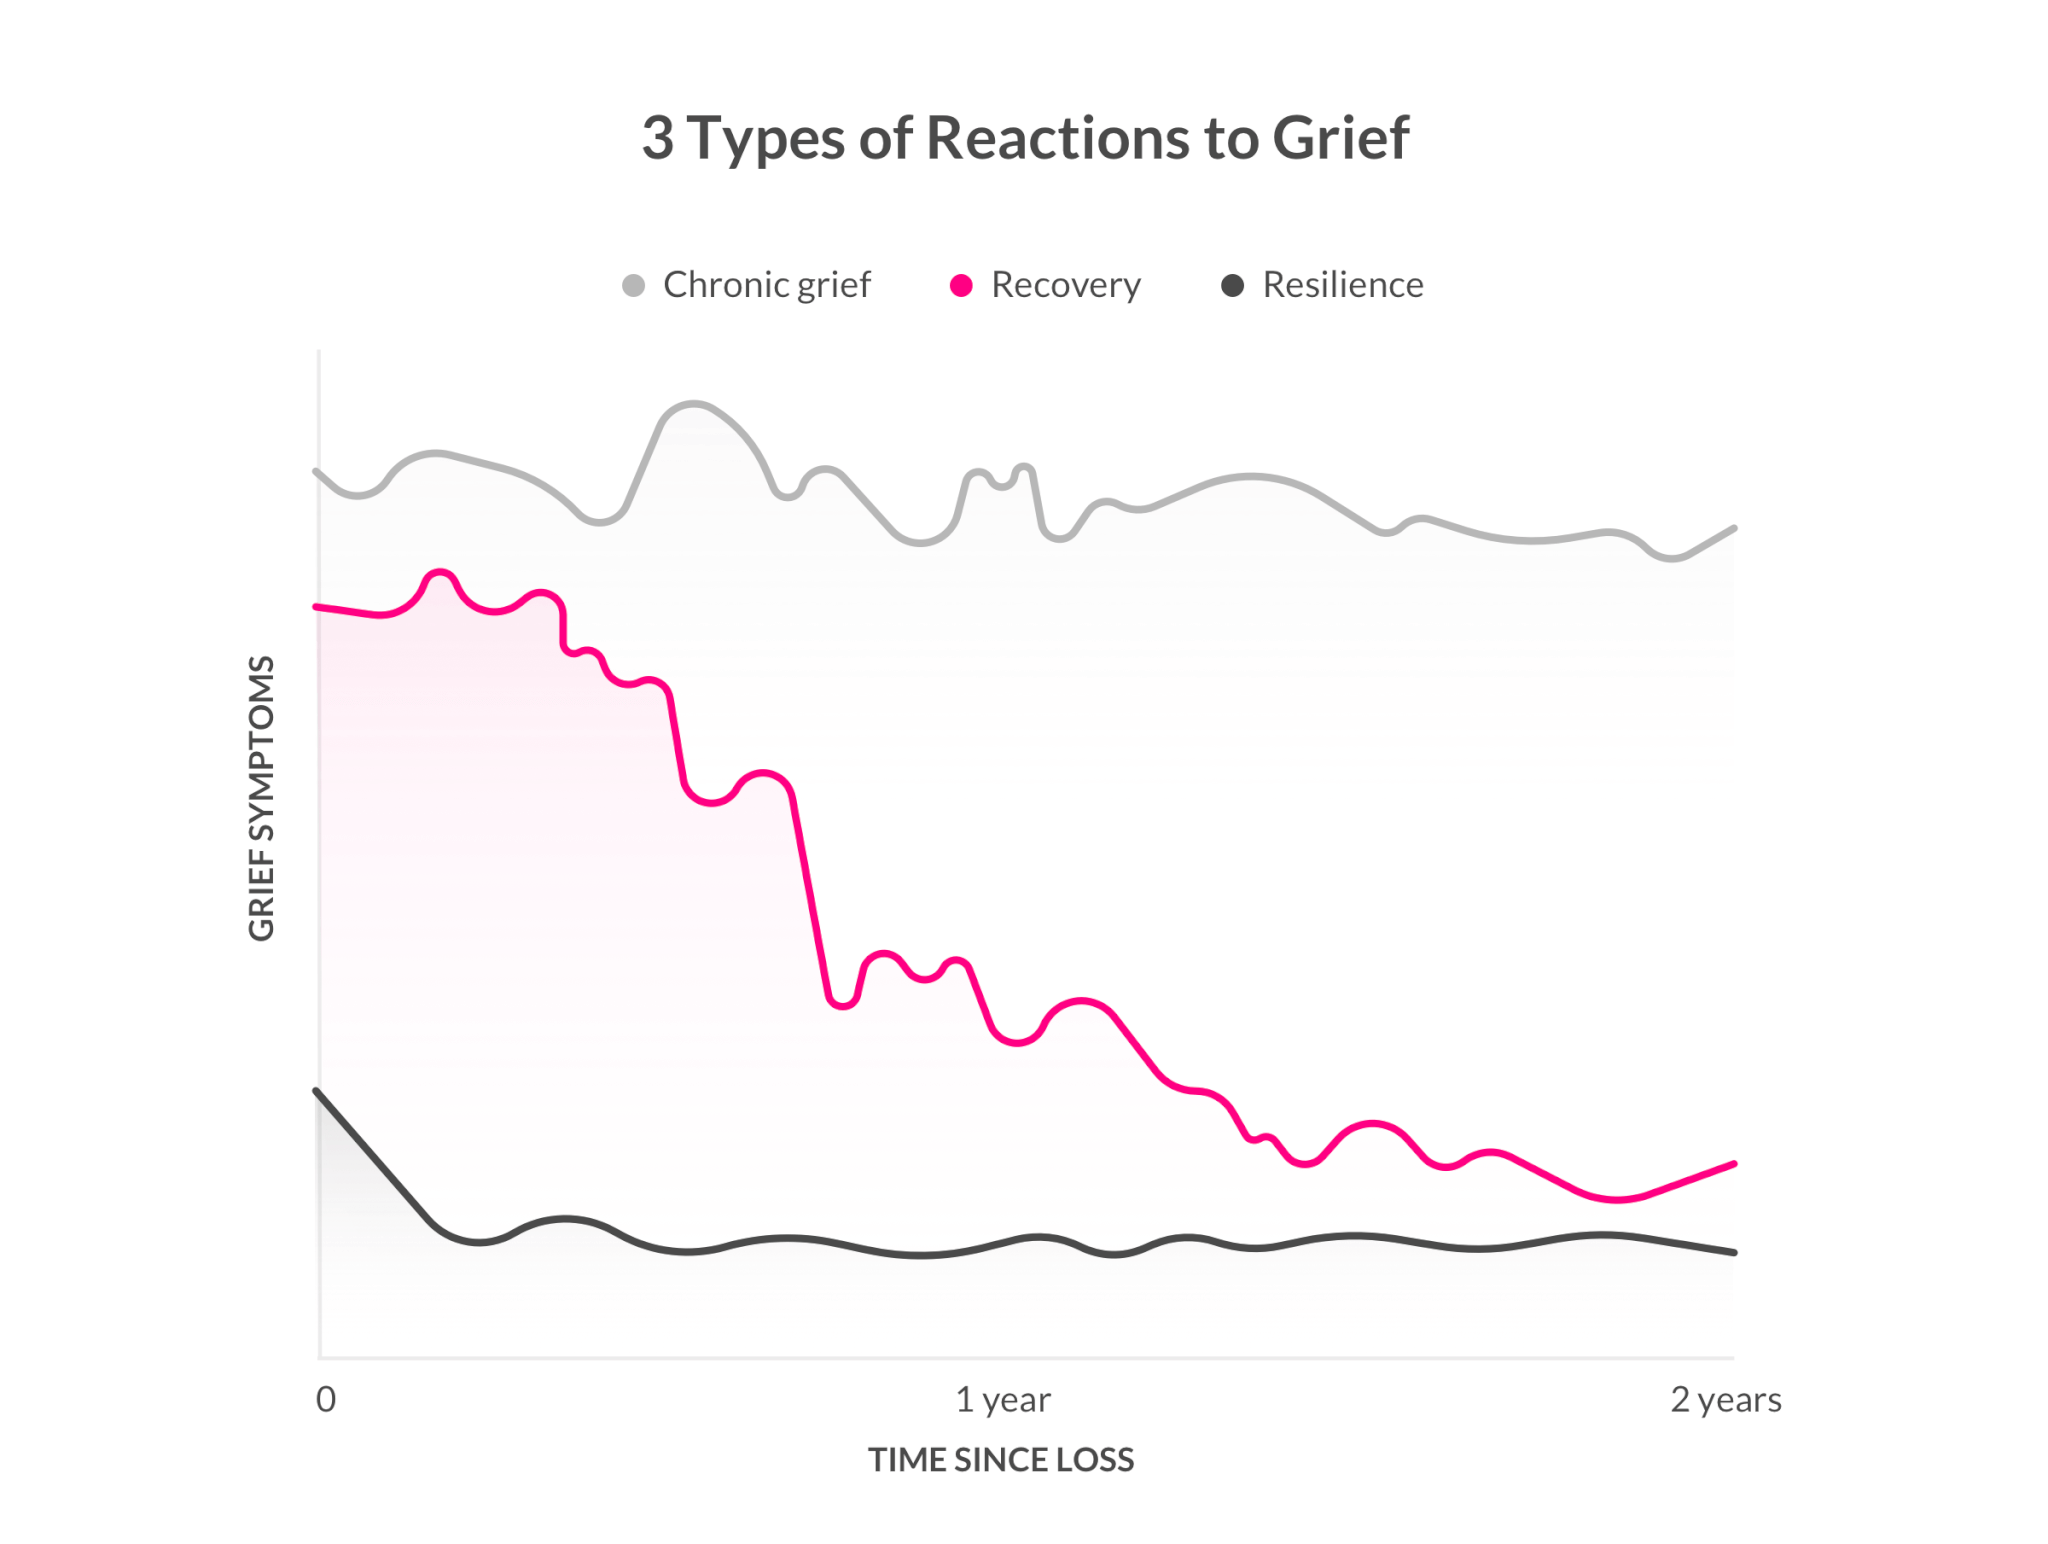 3 Types of Reactions To Grief - Lemonade Blog